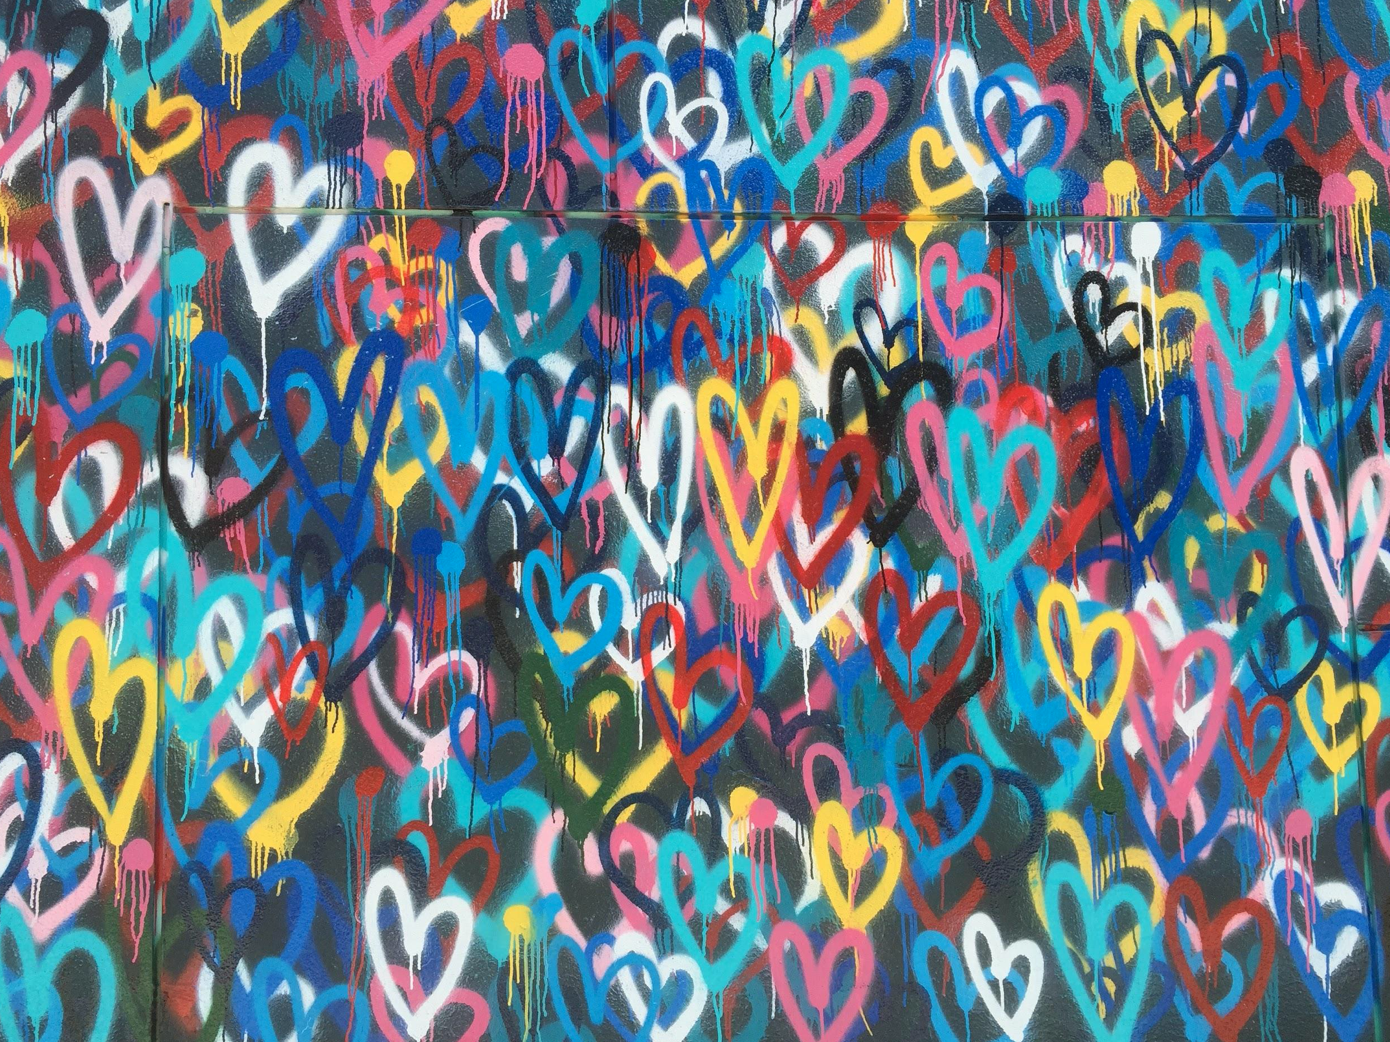 Multi-colored heart wallpaper; image by Renee Fisher, via Unsplash.com.